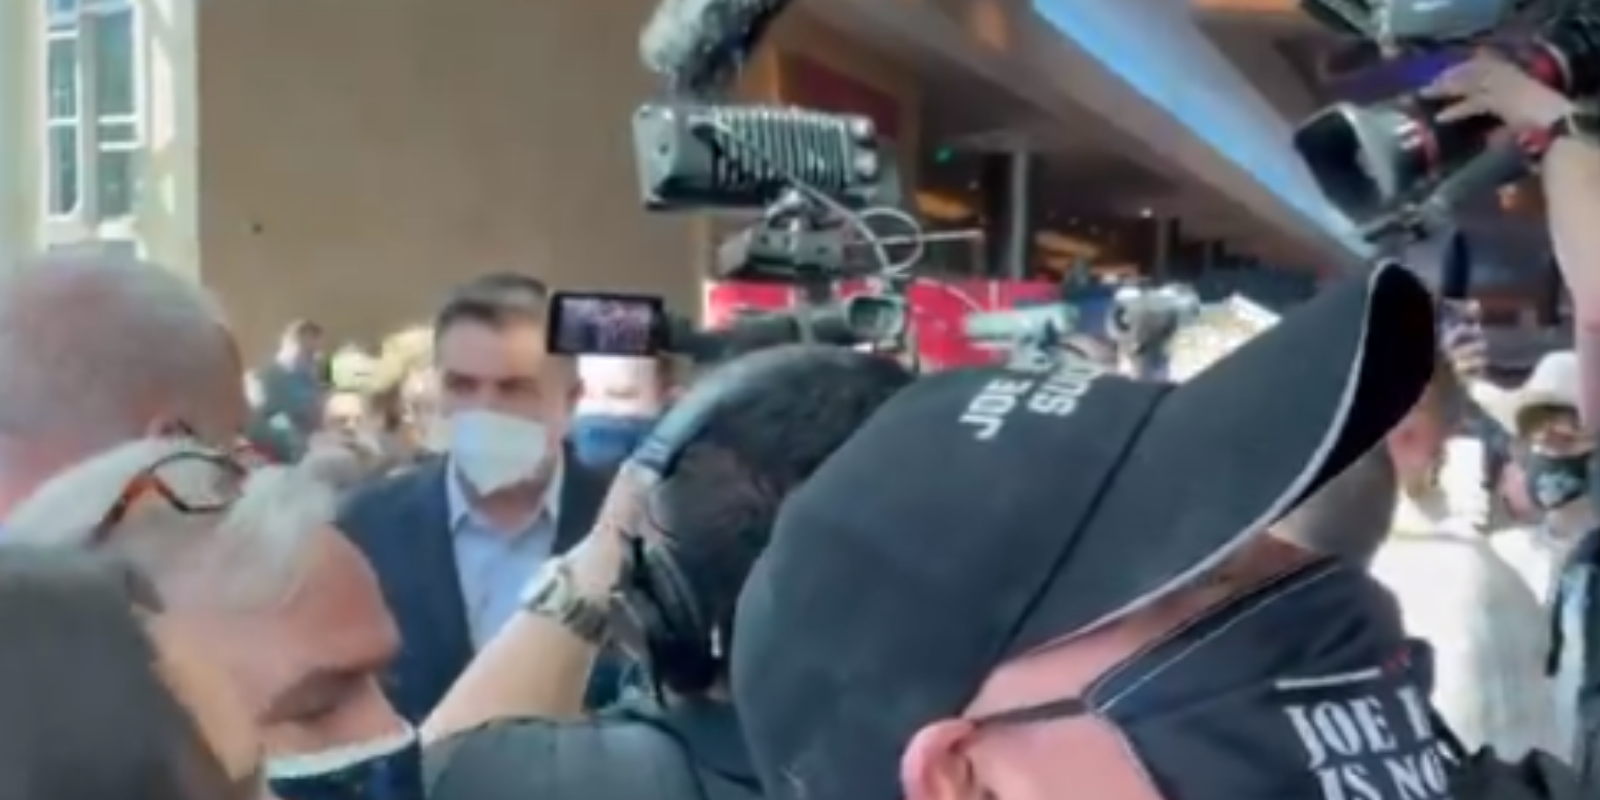 'CNN SUCKS': Jim Acosta confronted at CPAC over network's failure to cover Cuomo COVID and sexual harassment scandals